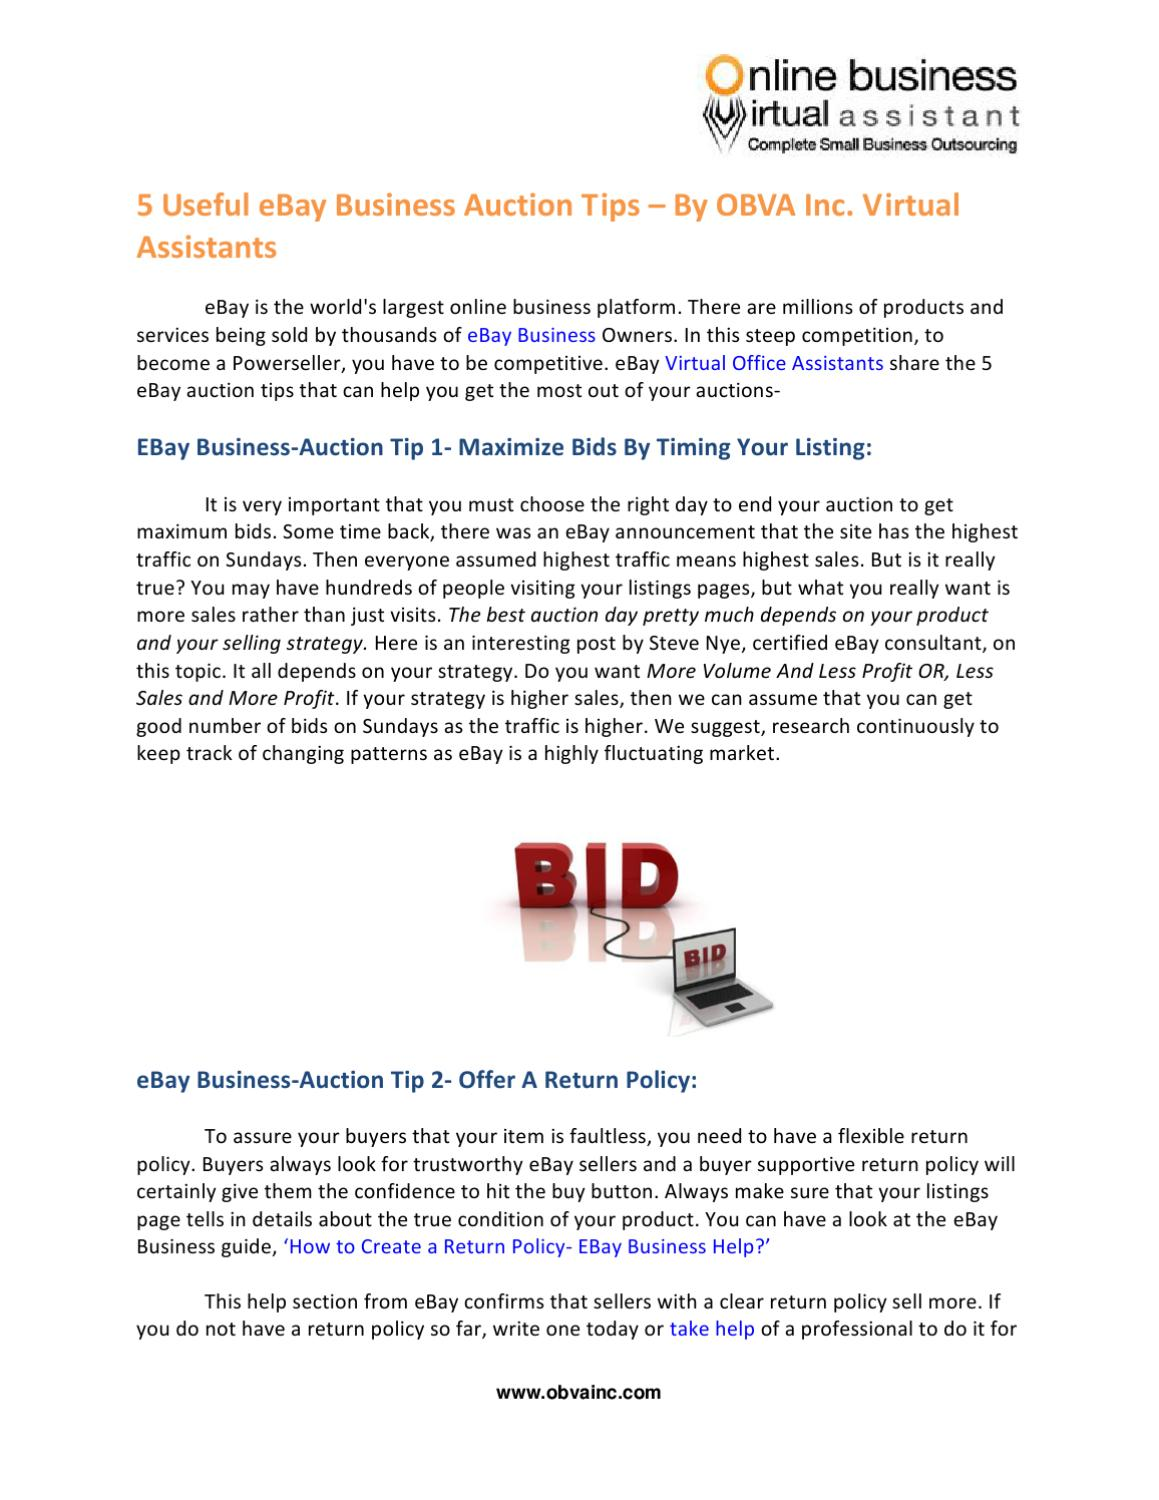 5 Useful Ebay Business Auction Tips By Obva Inc Virtualassistants By Obva Virtual Assistant Company Issuu